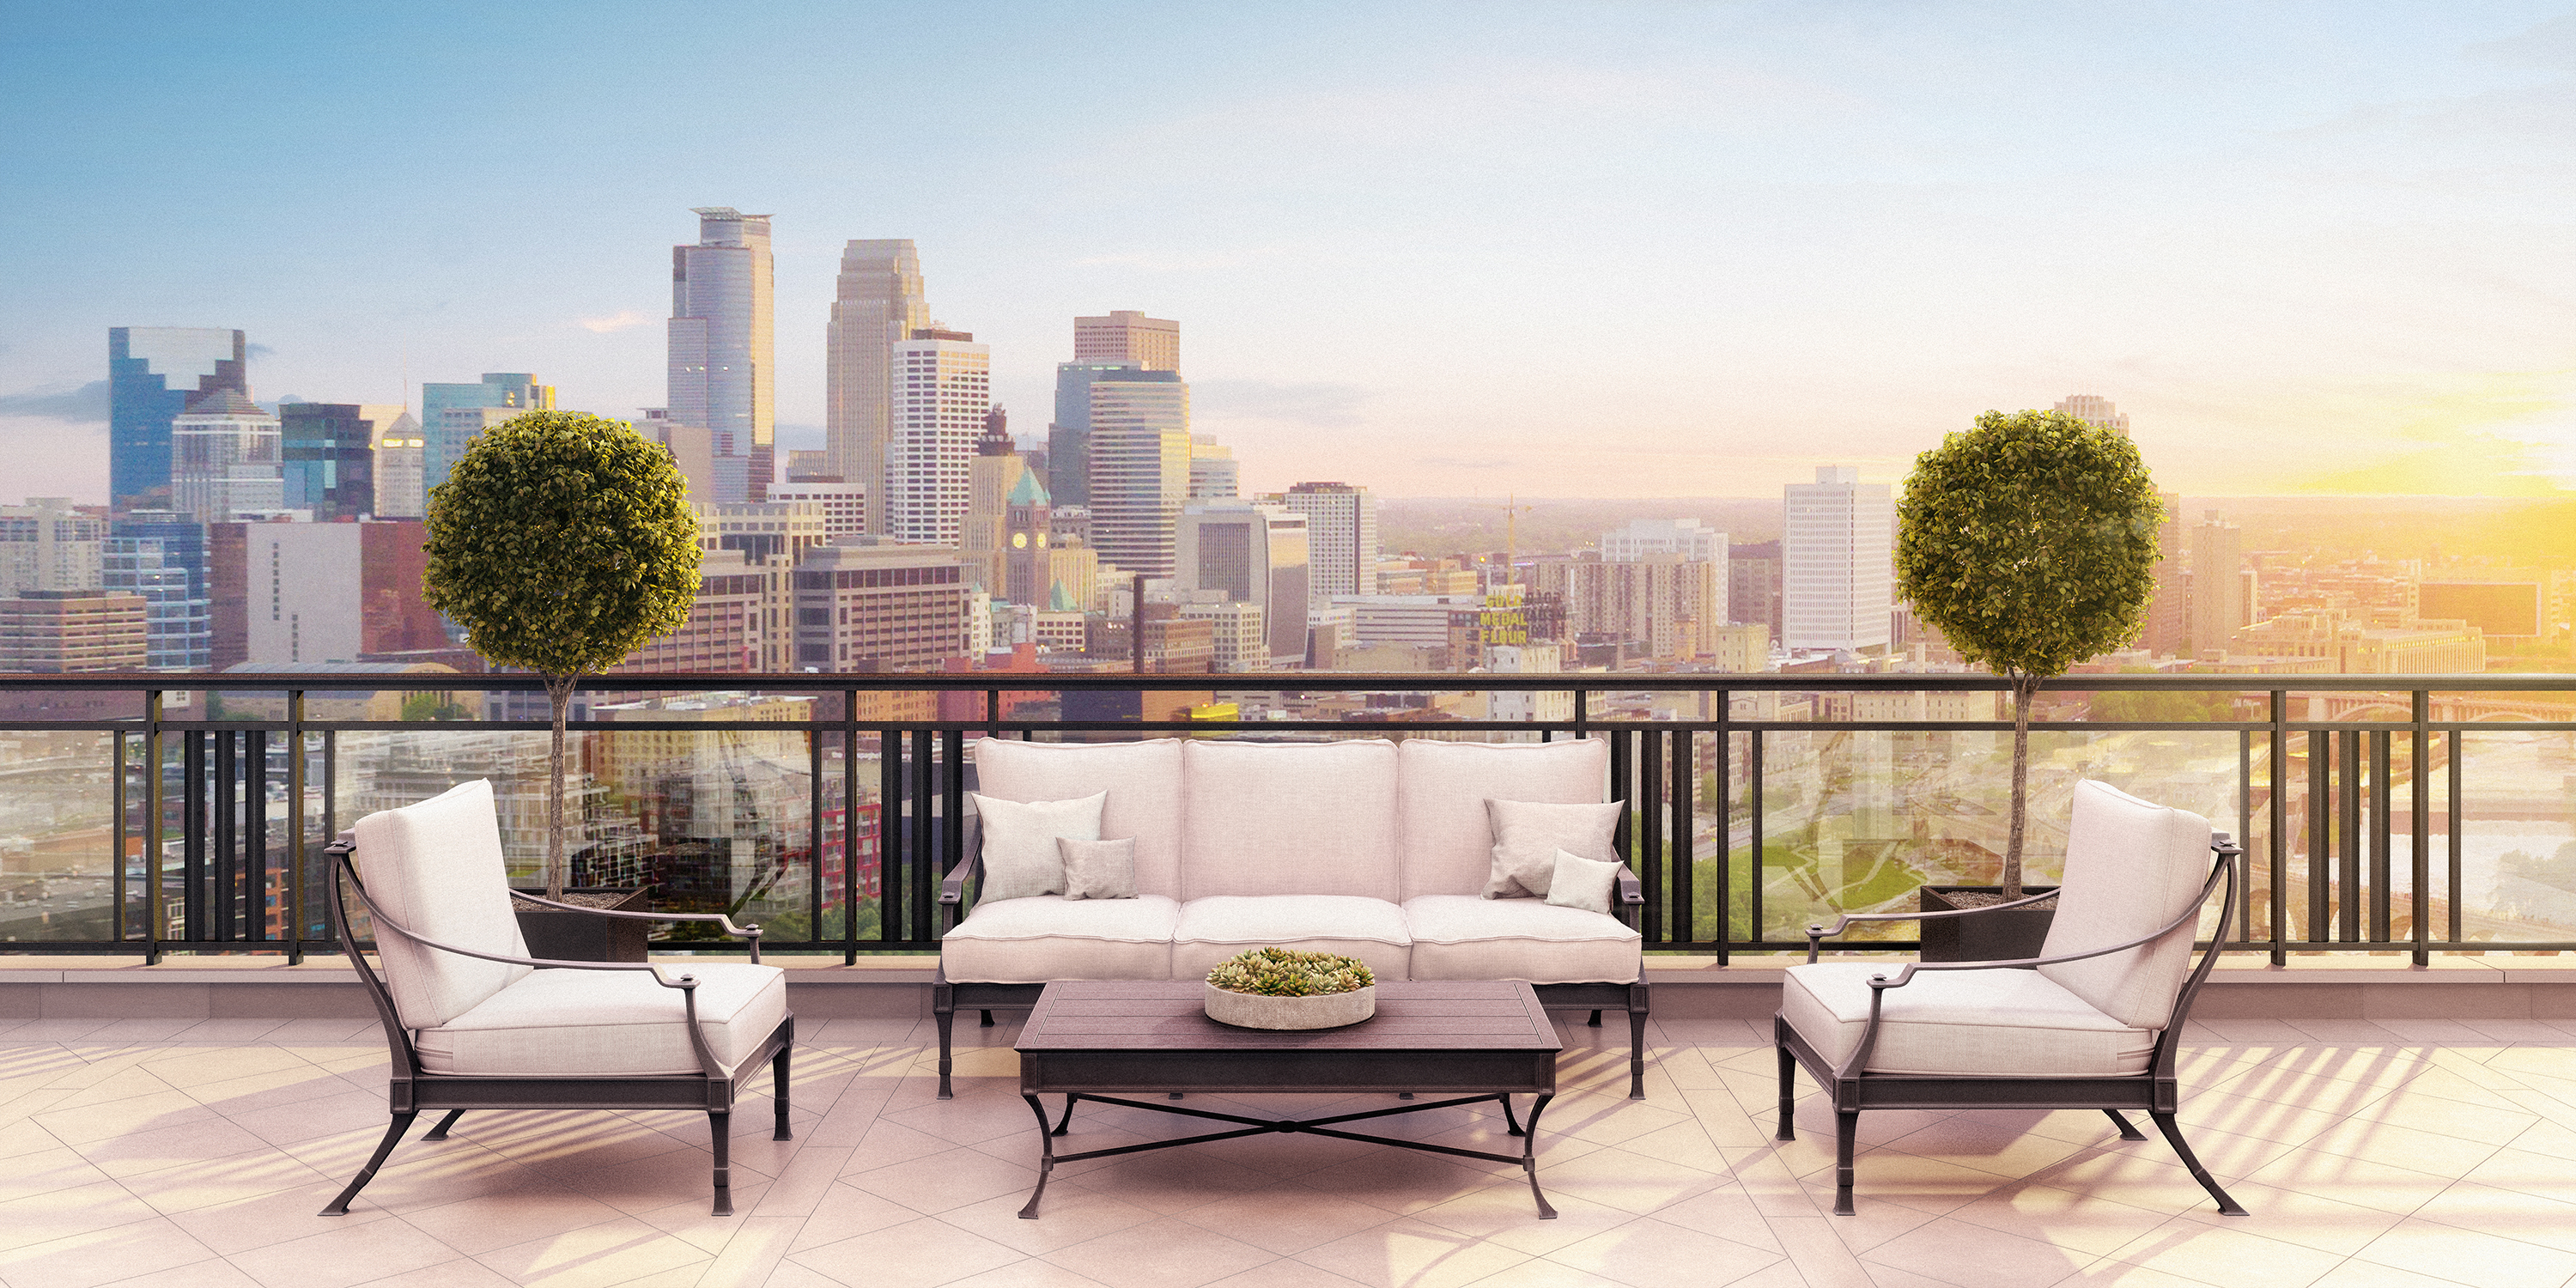 New Dramatic Images For World Class Condominium Project In Minneapolis Unveiled Ryan Companies